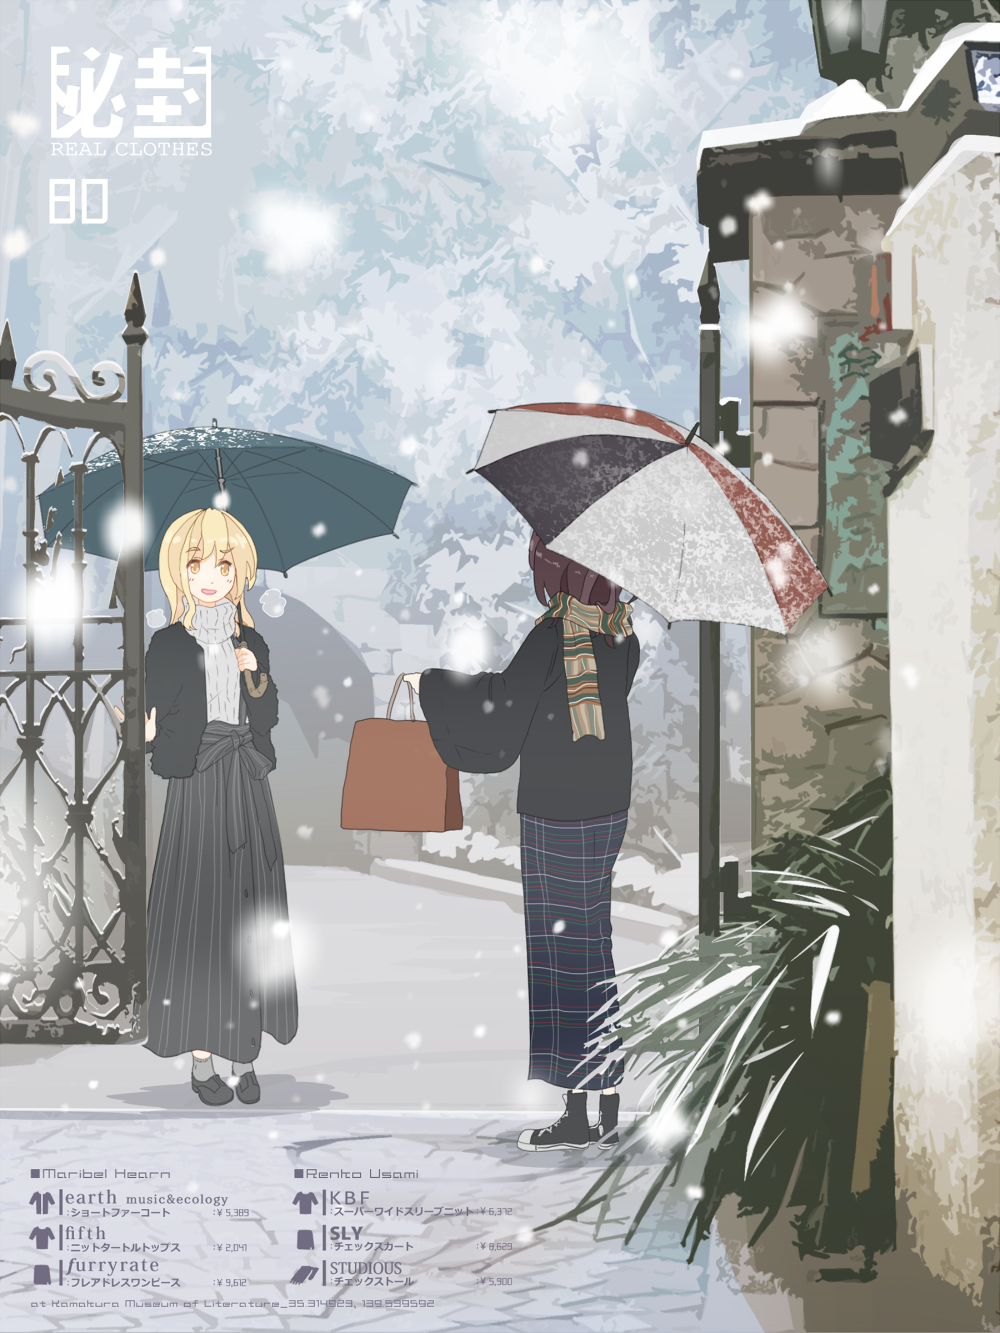 2girls alternate_costume bag blonde_hair brown_hair fur_coat gate highres long_hair multiple_girls no_hat no_headwear real_world_location scarf short_hair snow sweater tokoroten_(hmmuk) touhou tunnel umbrella yellow_eyes